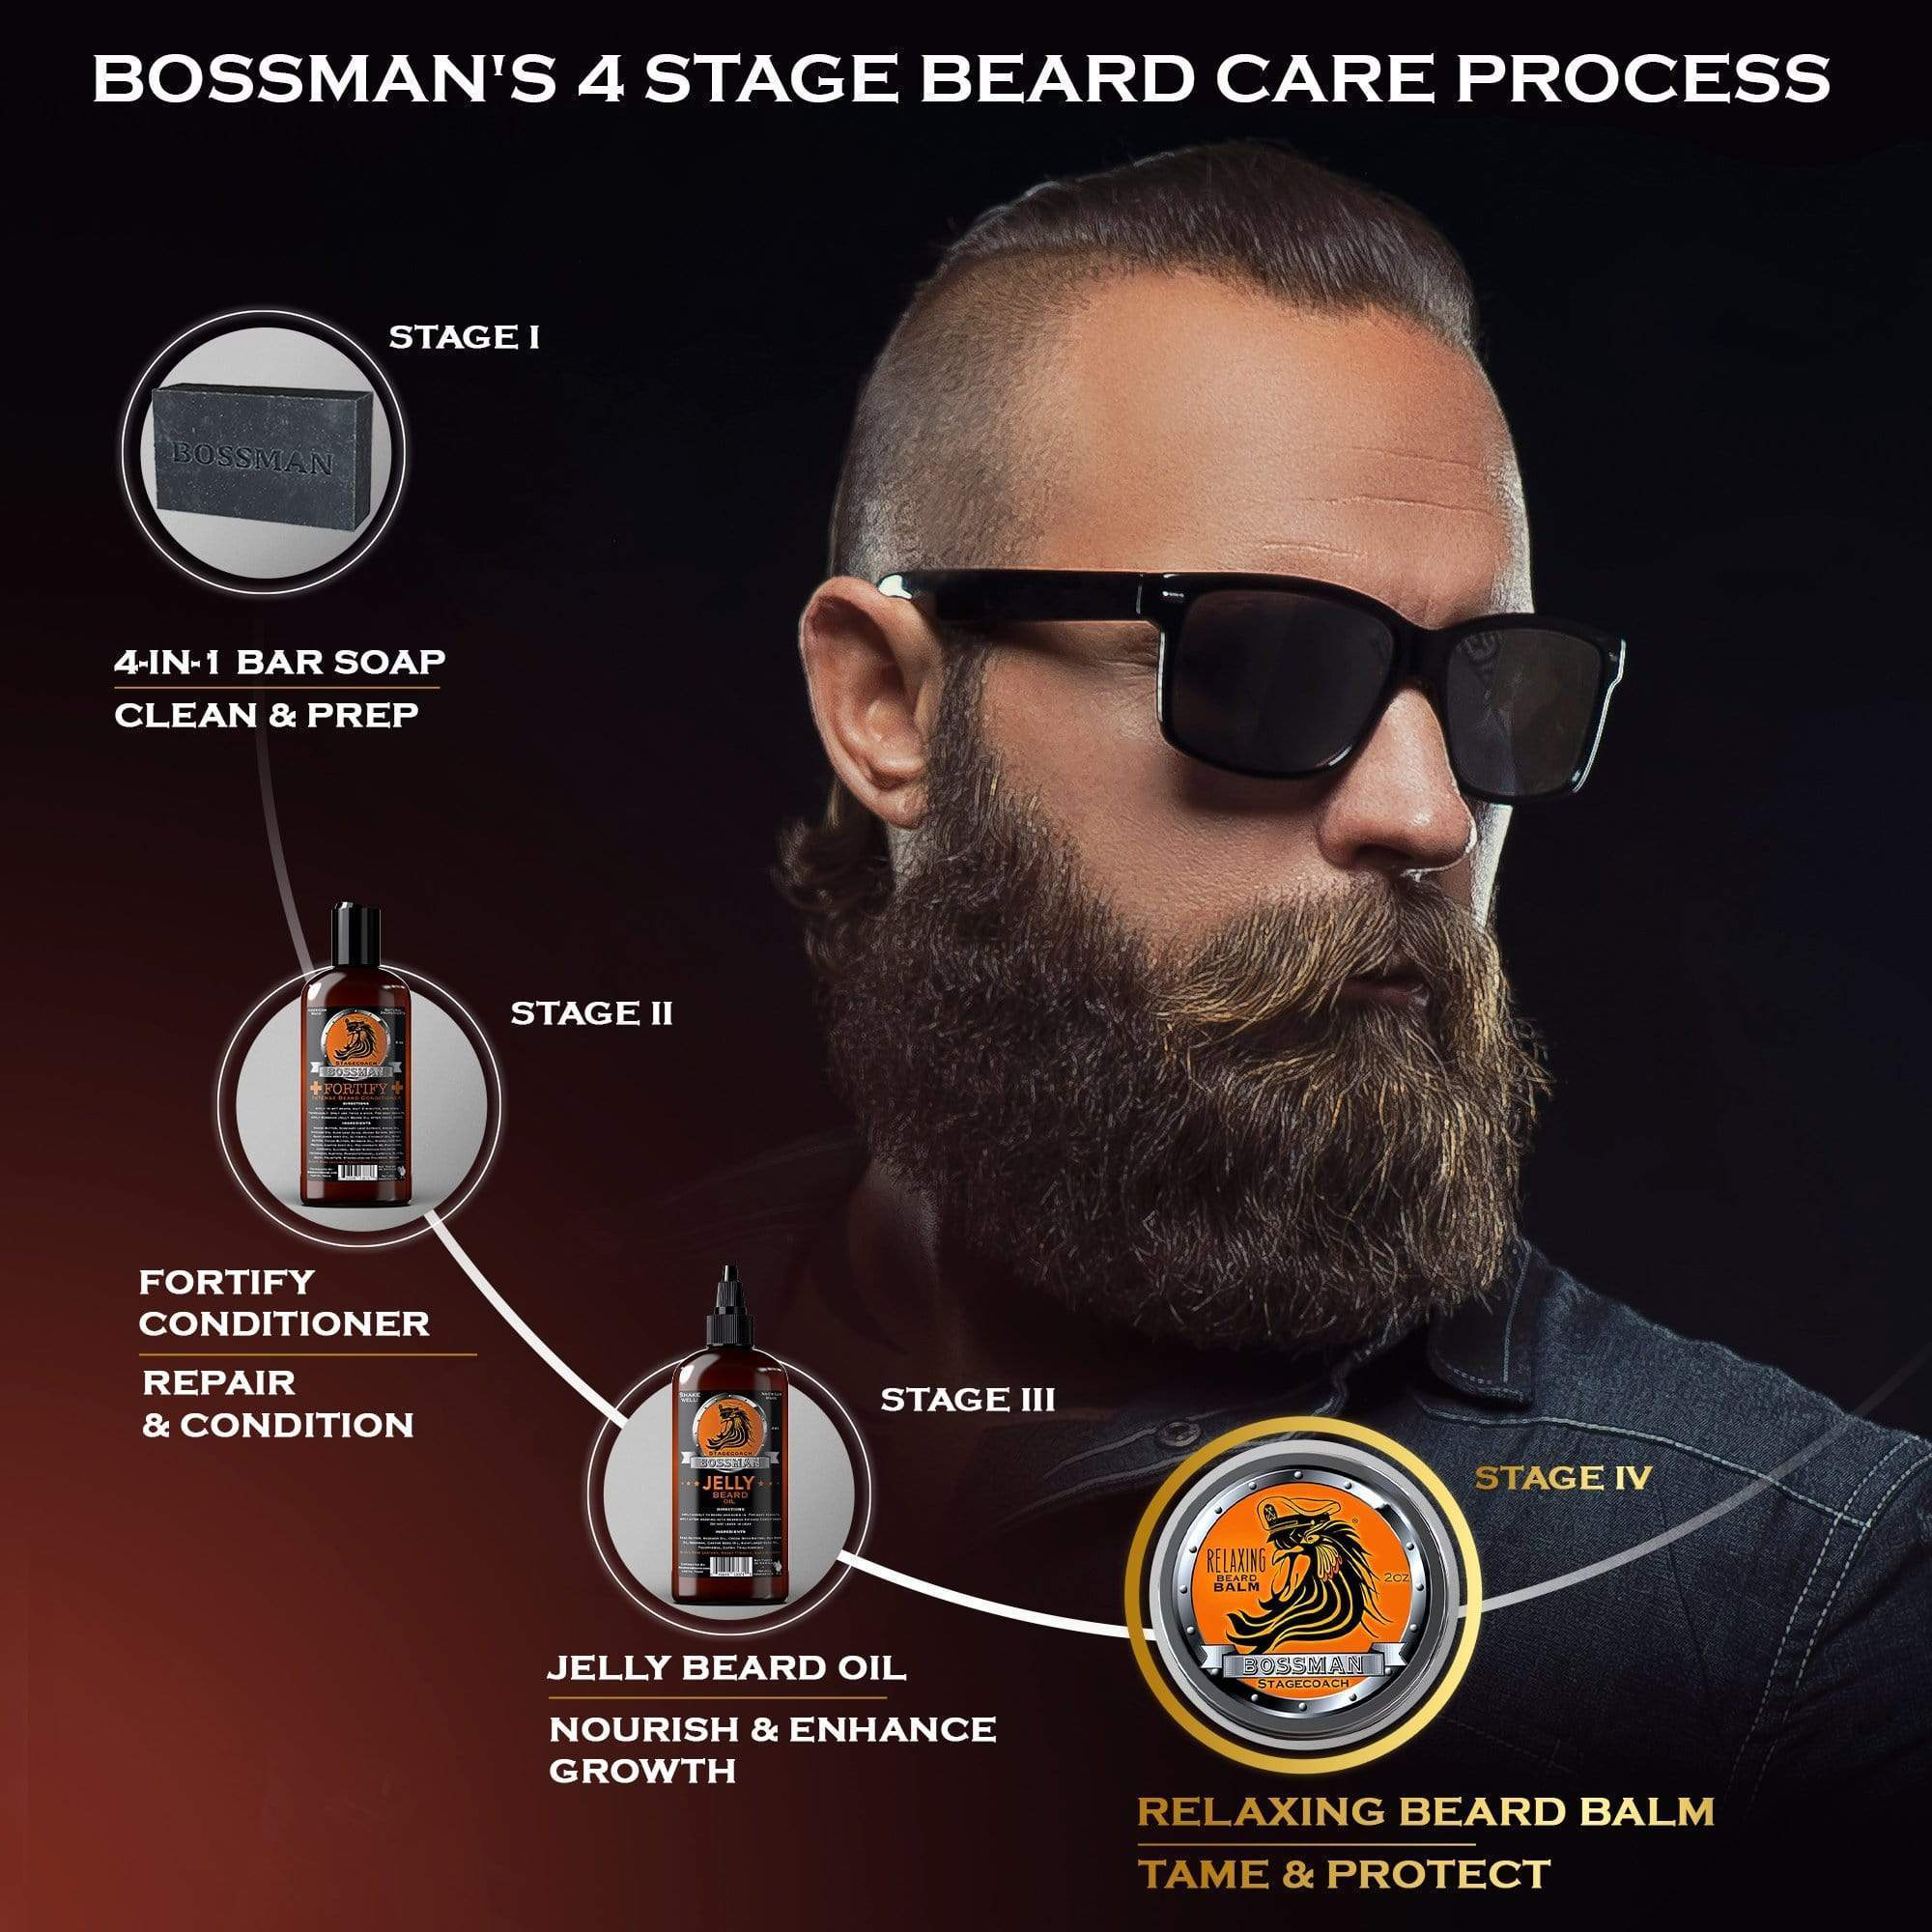 Bossman's 4 stage beard care process